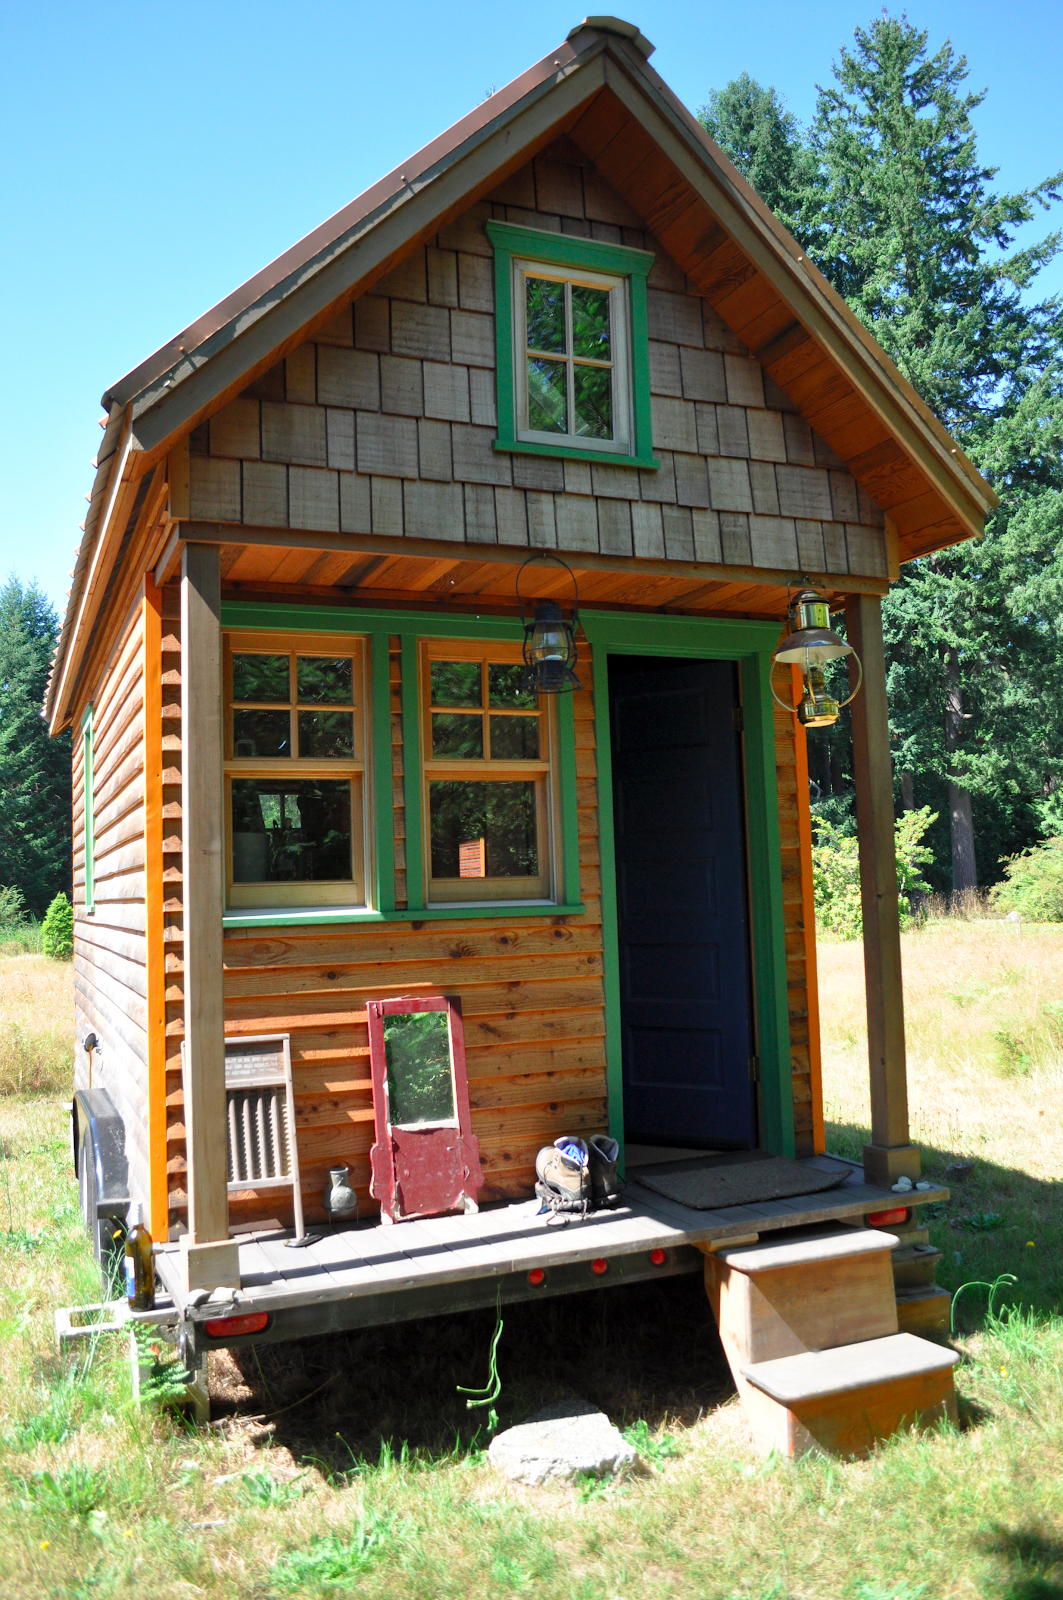 The Case Against the Tiny House